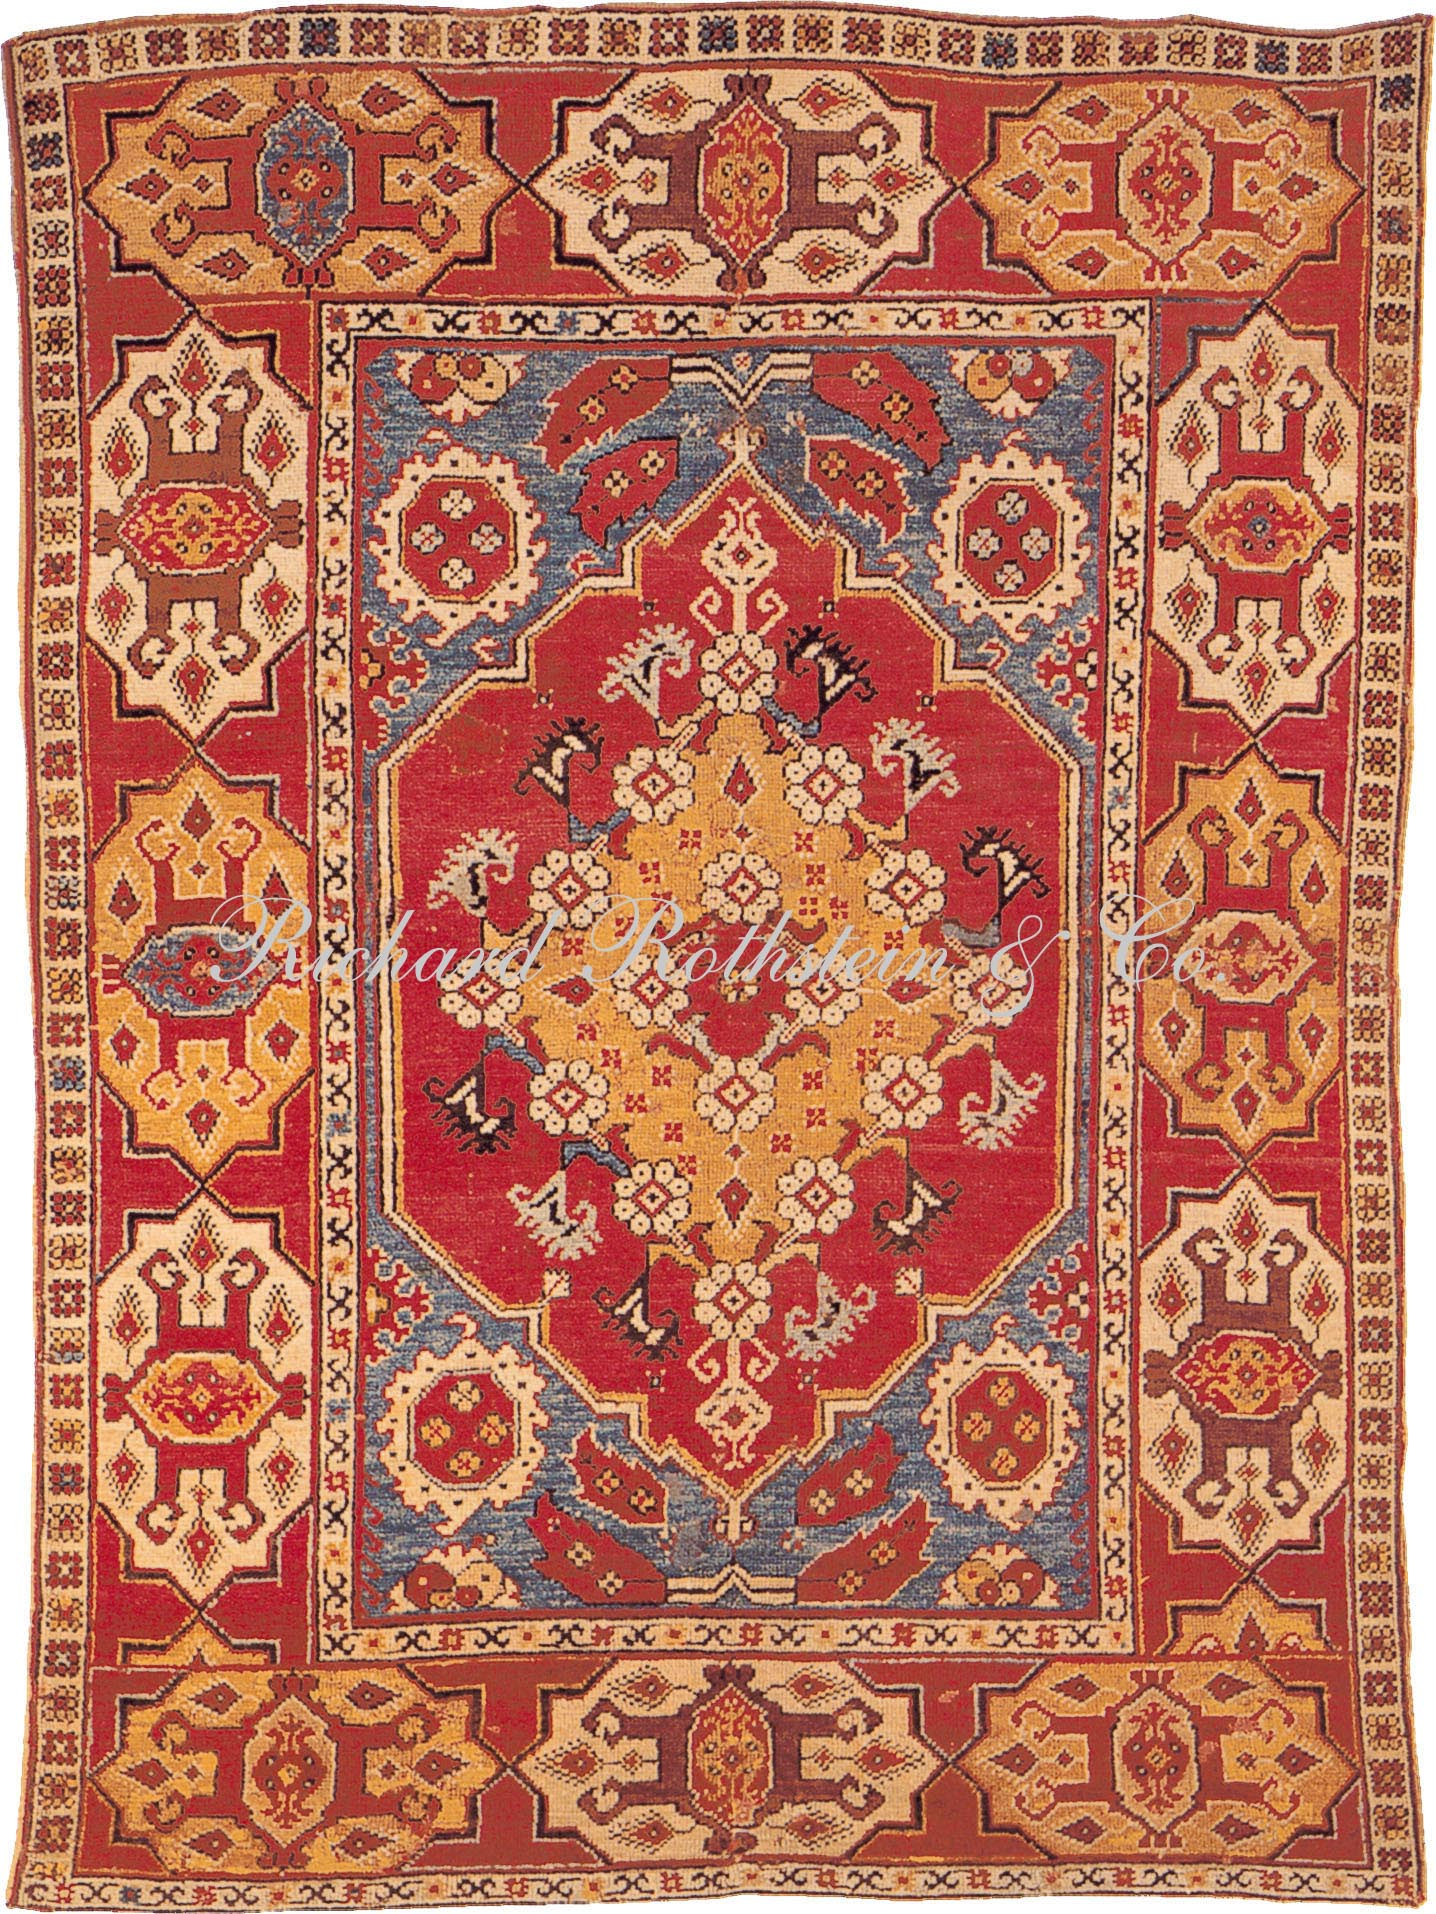 Dazzling oushak rugs for floorings and rugs ideas with antique oushak rugs